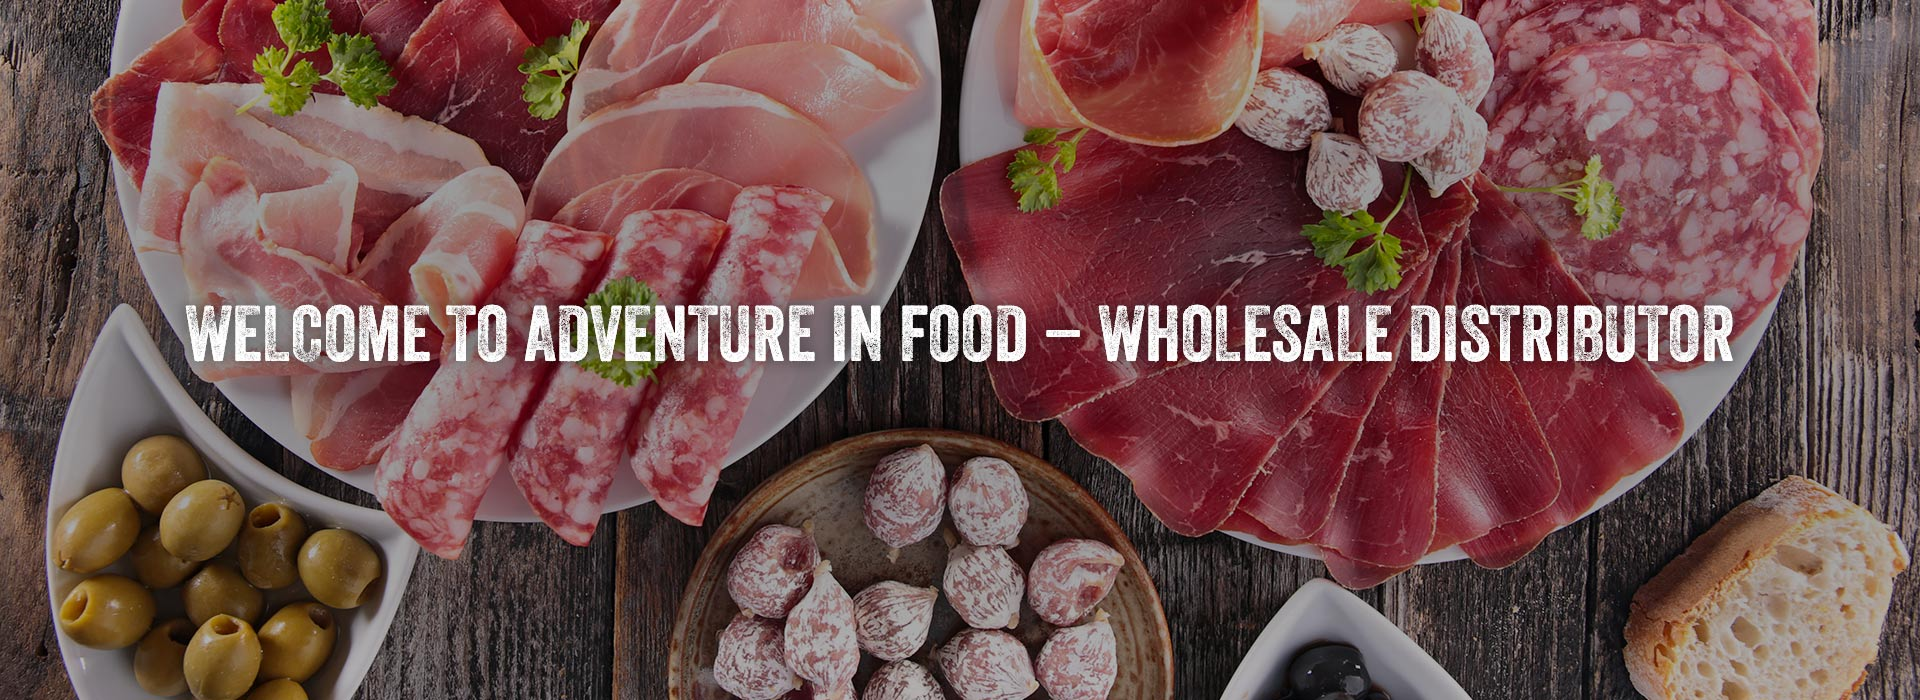 Welcome to Adventure in Food - Wholesale Distributor, Capital Region New York